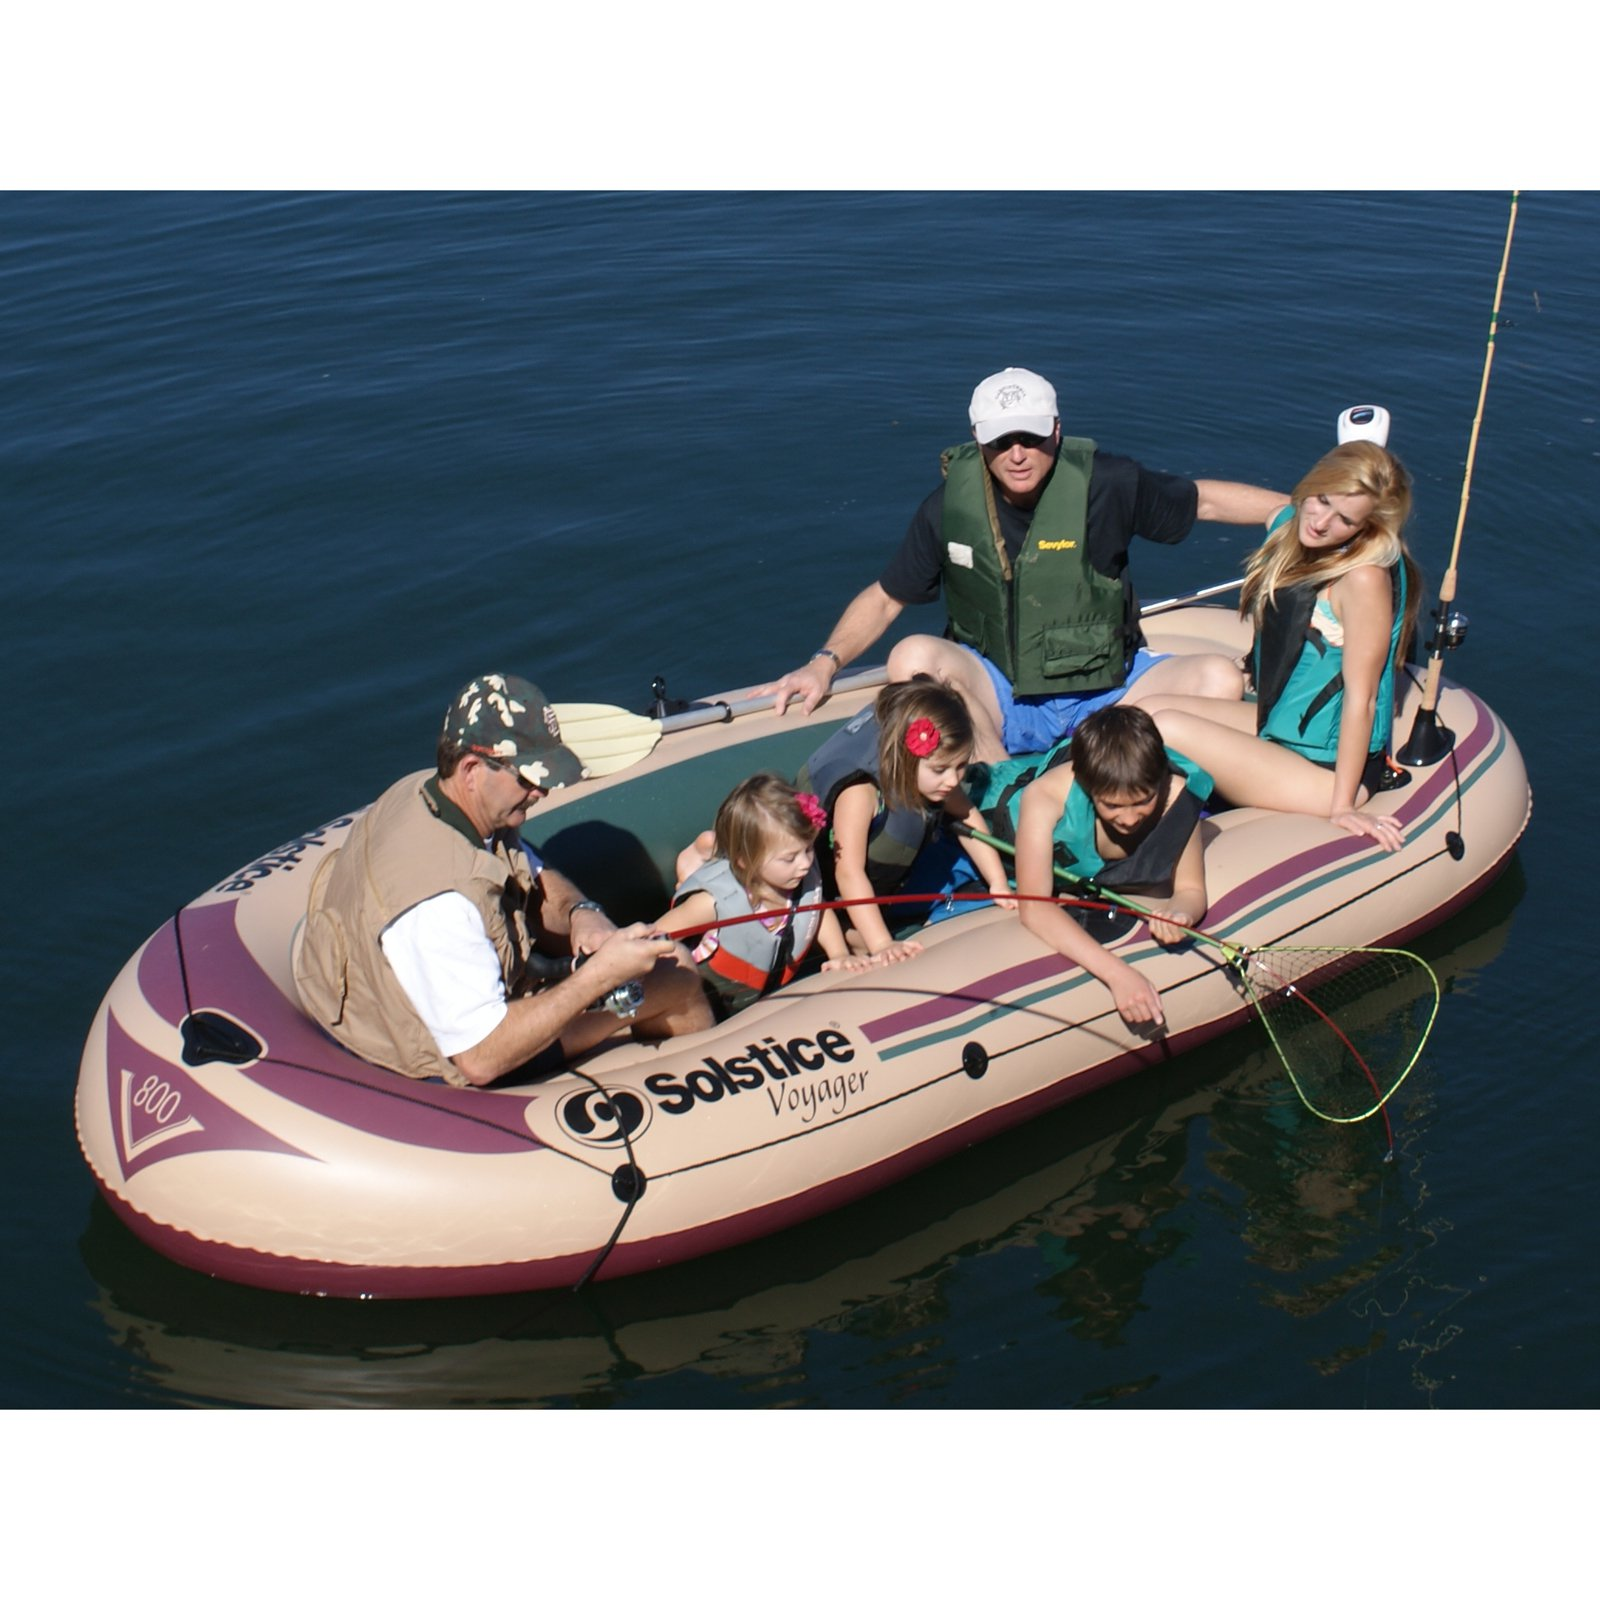 Solstice Voyager Inflatable 6 Person Boat Set